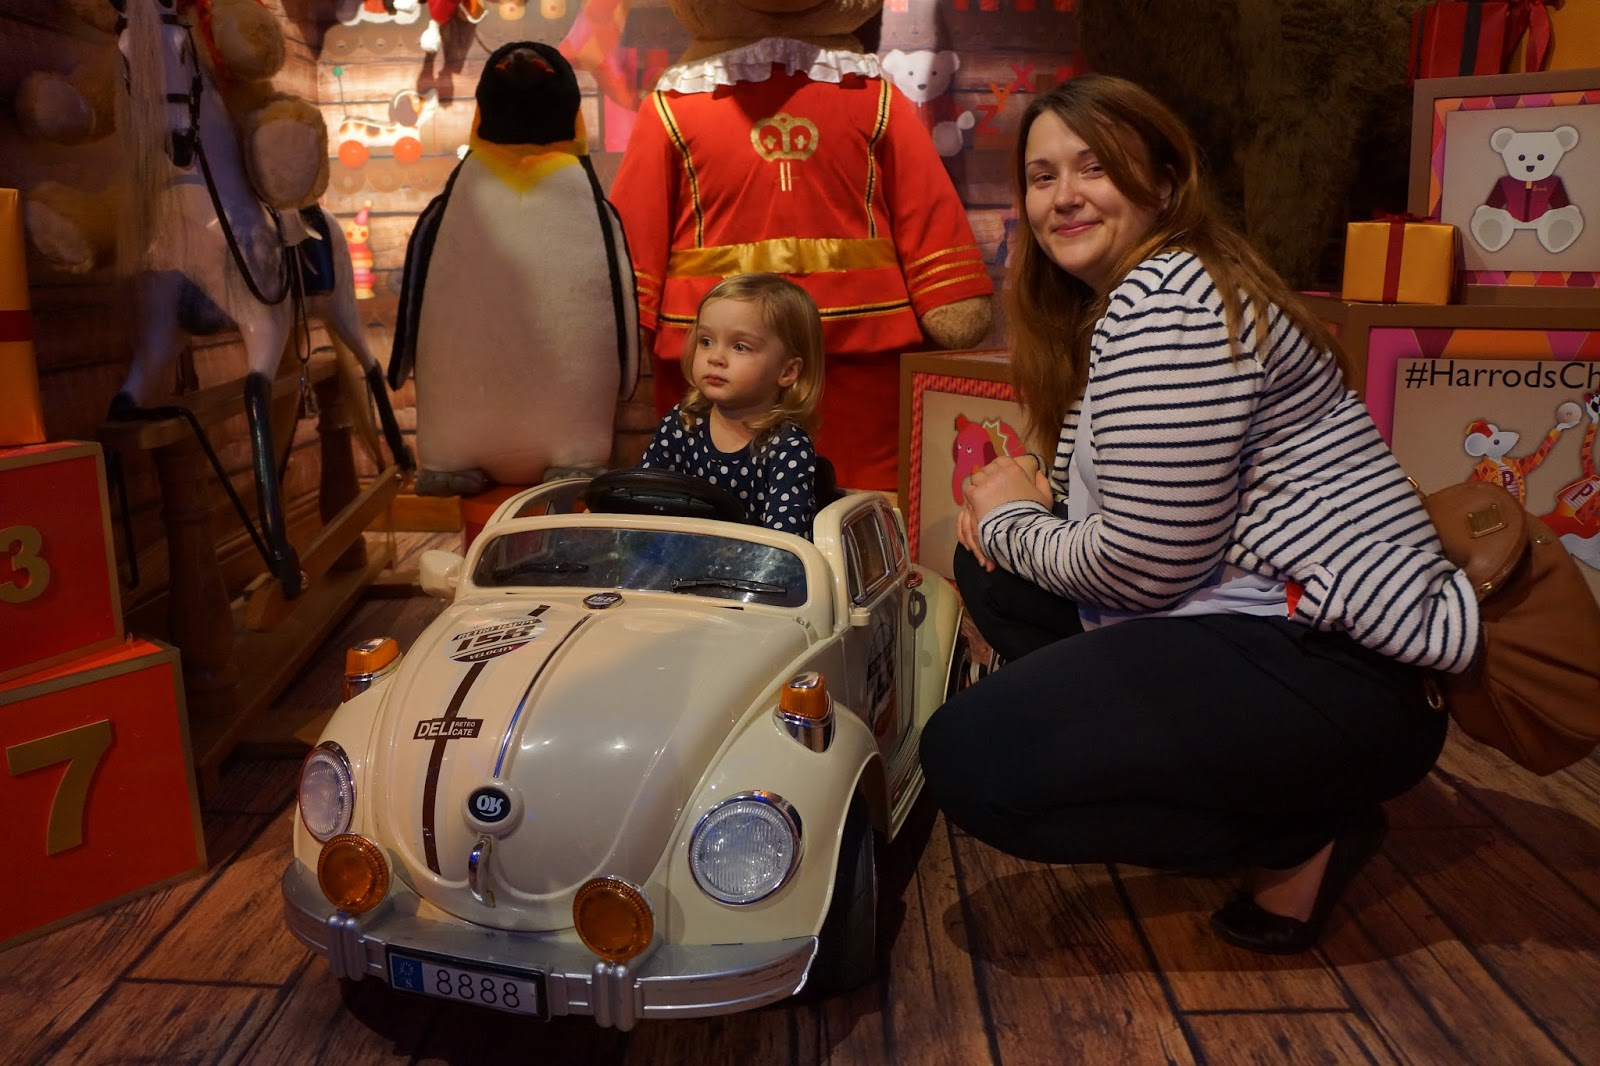 harrods christmas grotto 2015 toy car